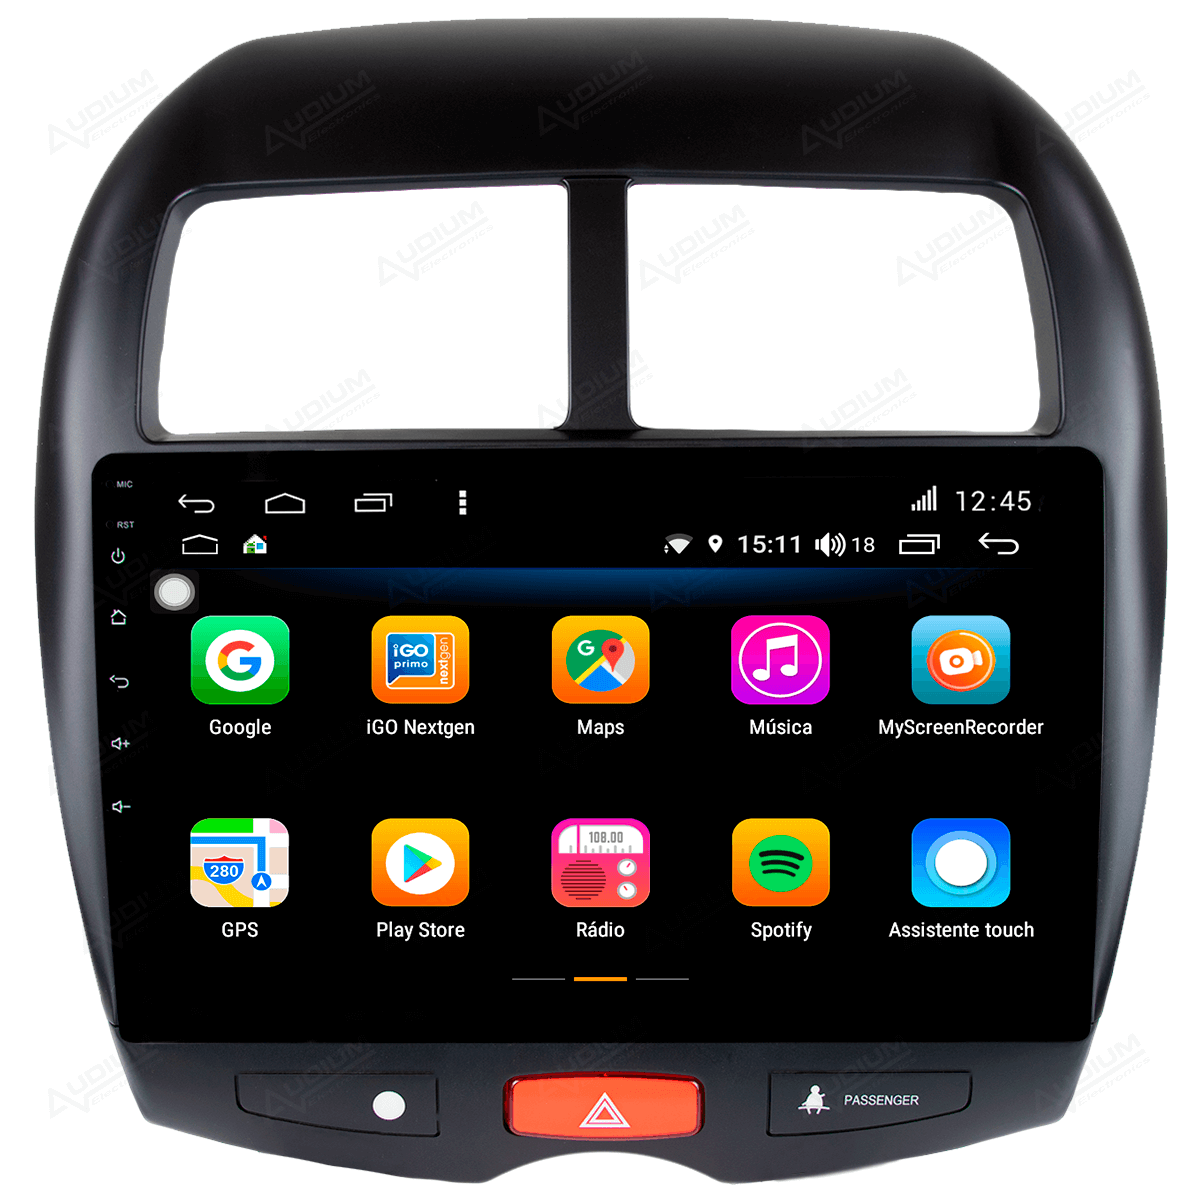 Central Multimidia Mistubishi ASX 2010 a 2019 -  Aikon ATOM X10 - Tela 10 pol - Waze Spotify - 2 cameras Ré + Frontal - TV  Digital - GPS Integrado -  Bluetooth - 2 entradas USB - Android 8